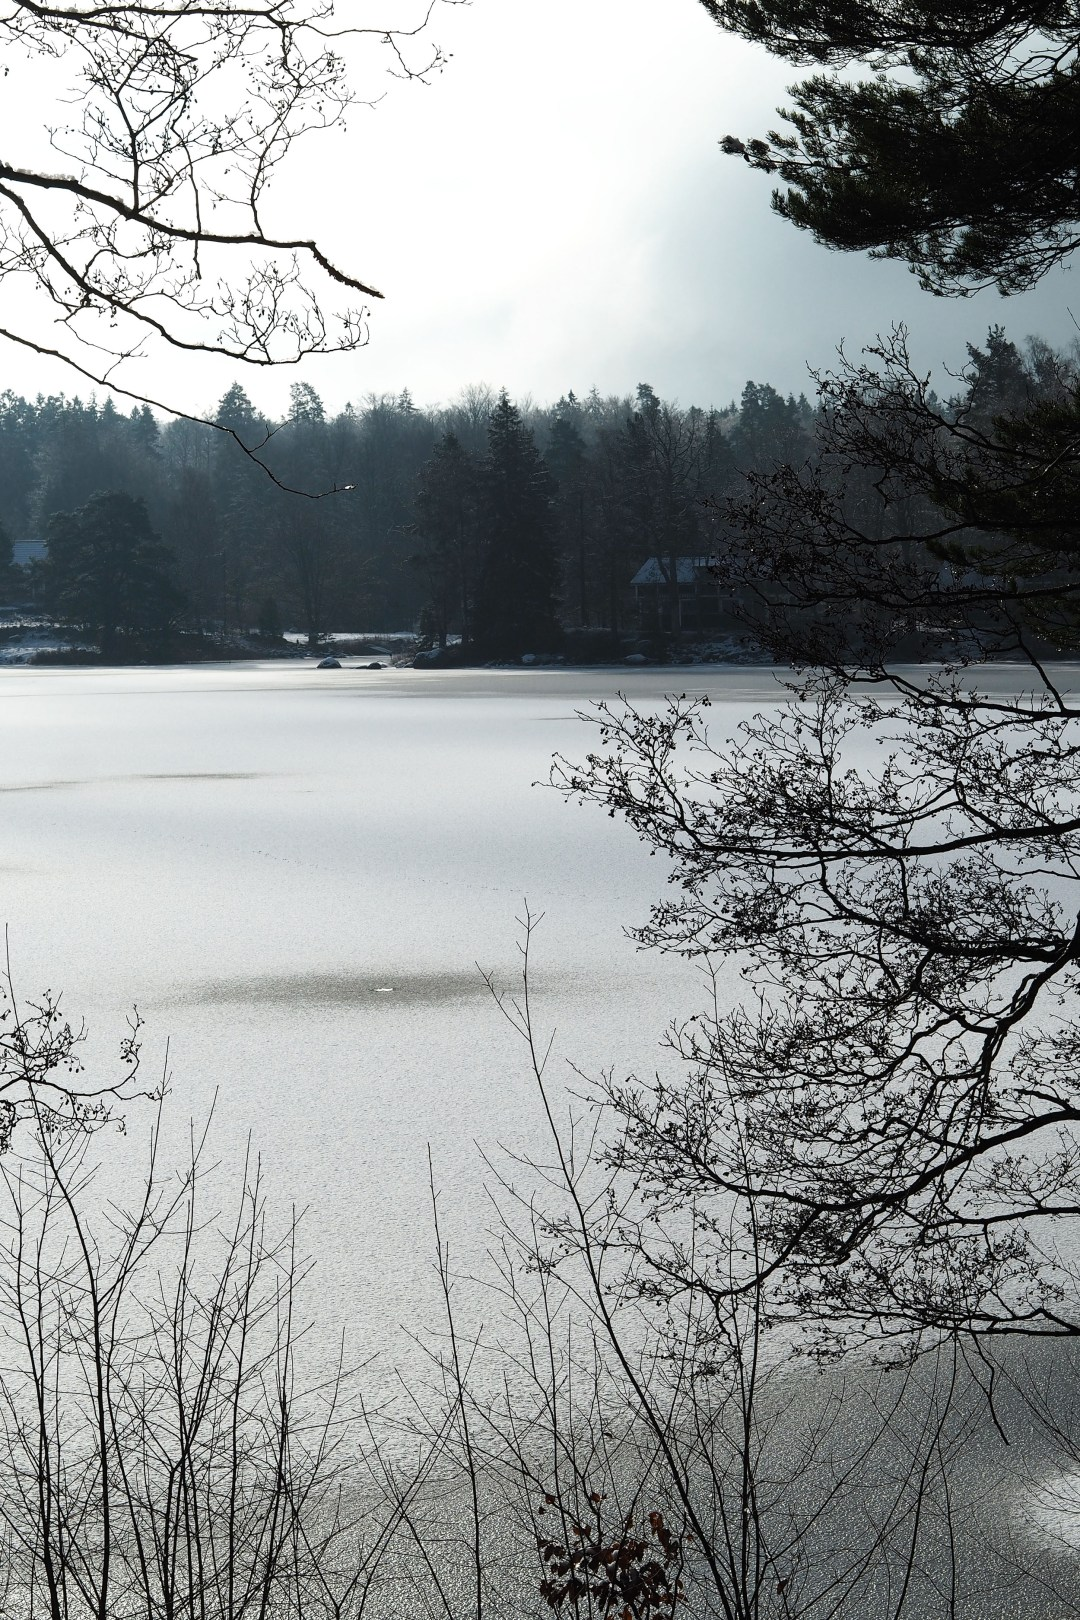 Swedish forests and frozen lakes - a view from the Vipp Shelter